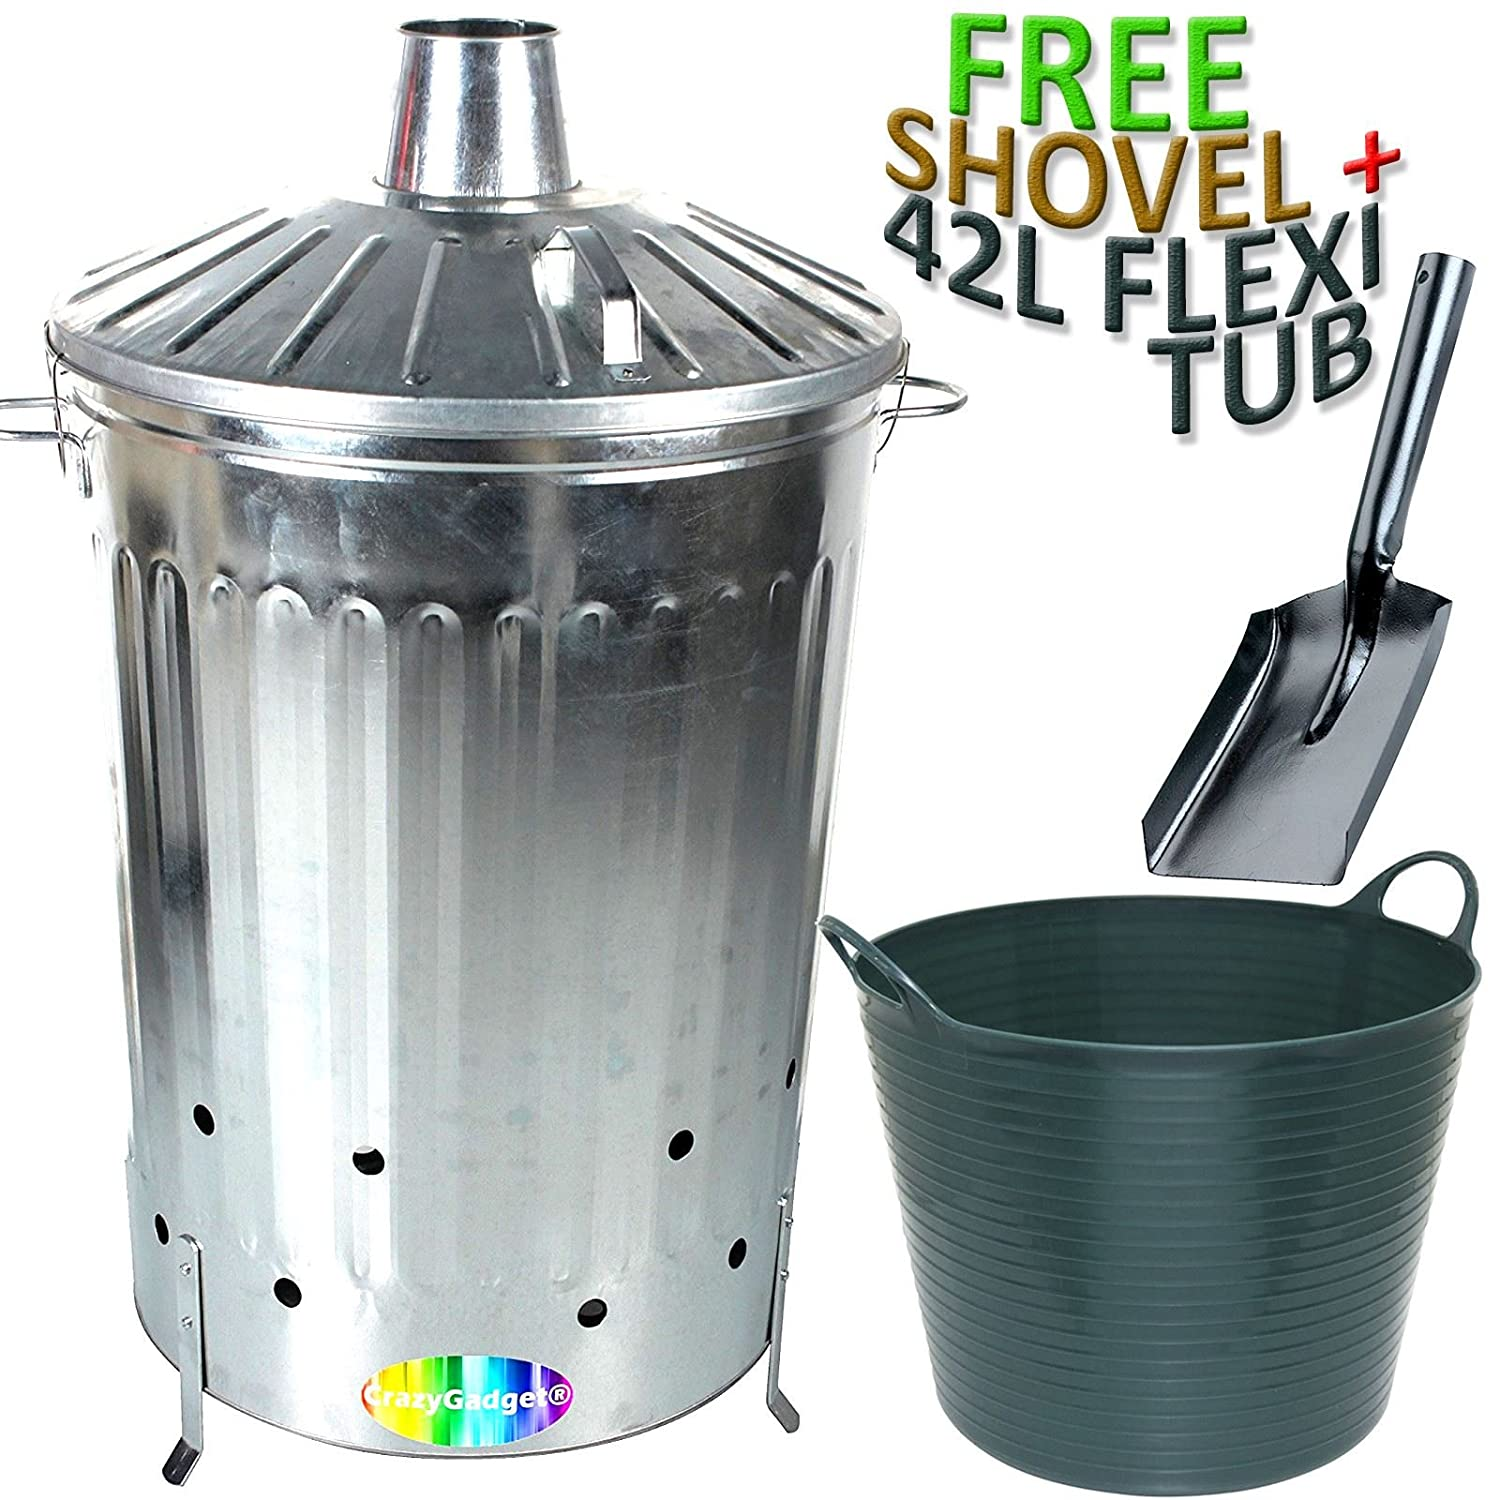 CrazyGadget® 125 Litre 125L Extra Large Galvanised Metal Incinerator Fire Burning Bin with Special Locking Lid + Free Ash Shovel + Free 42L Litre Plastic Flexi Tub ( Black )